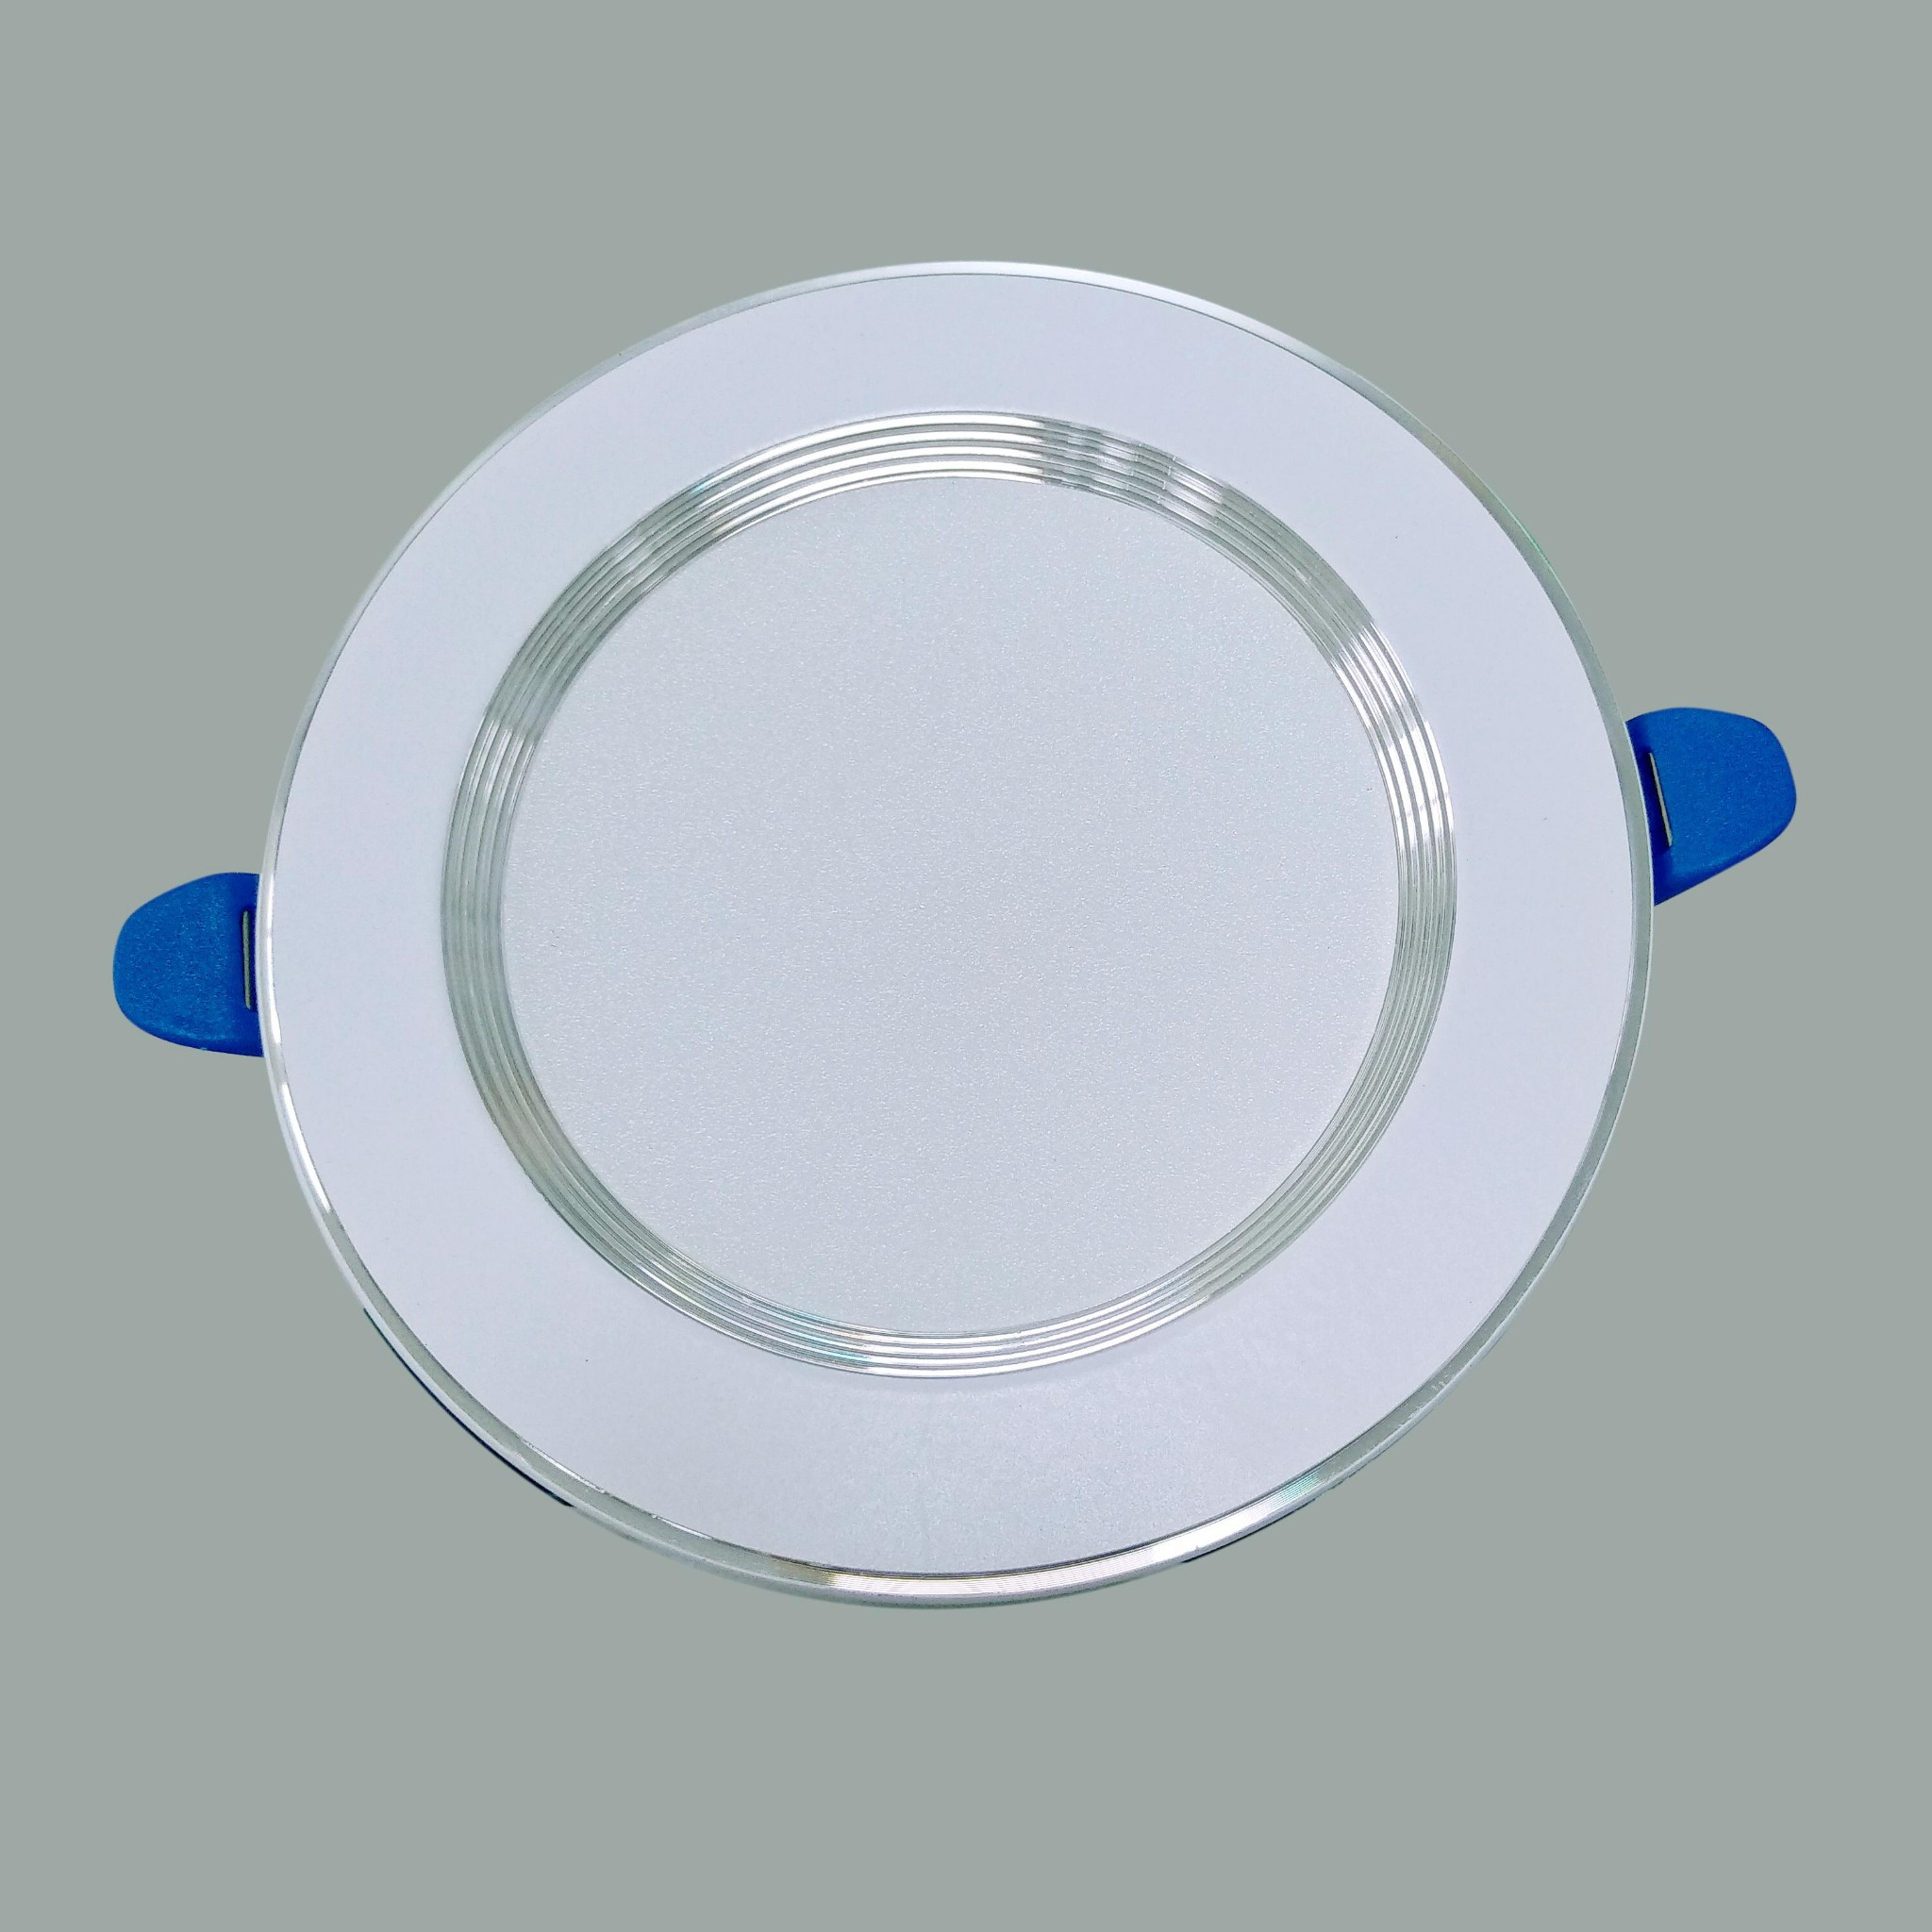 /products/den-led-downlight-vien-bac-doi-mau-d04b